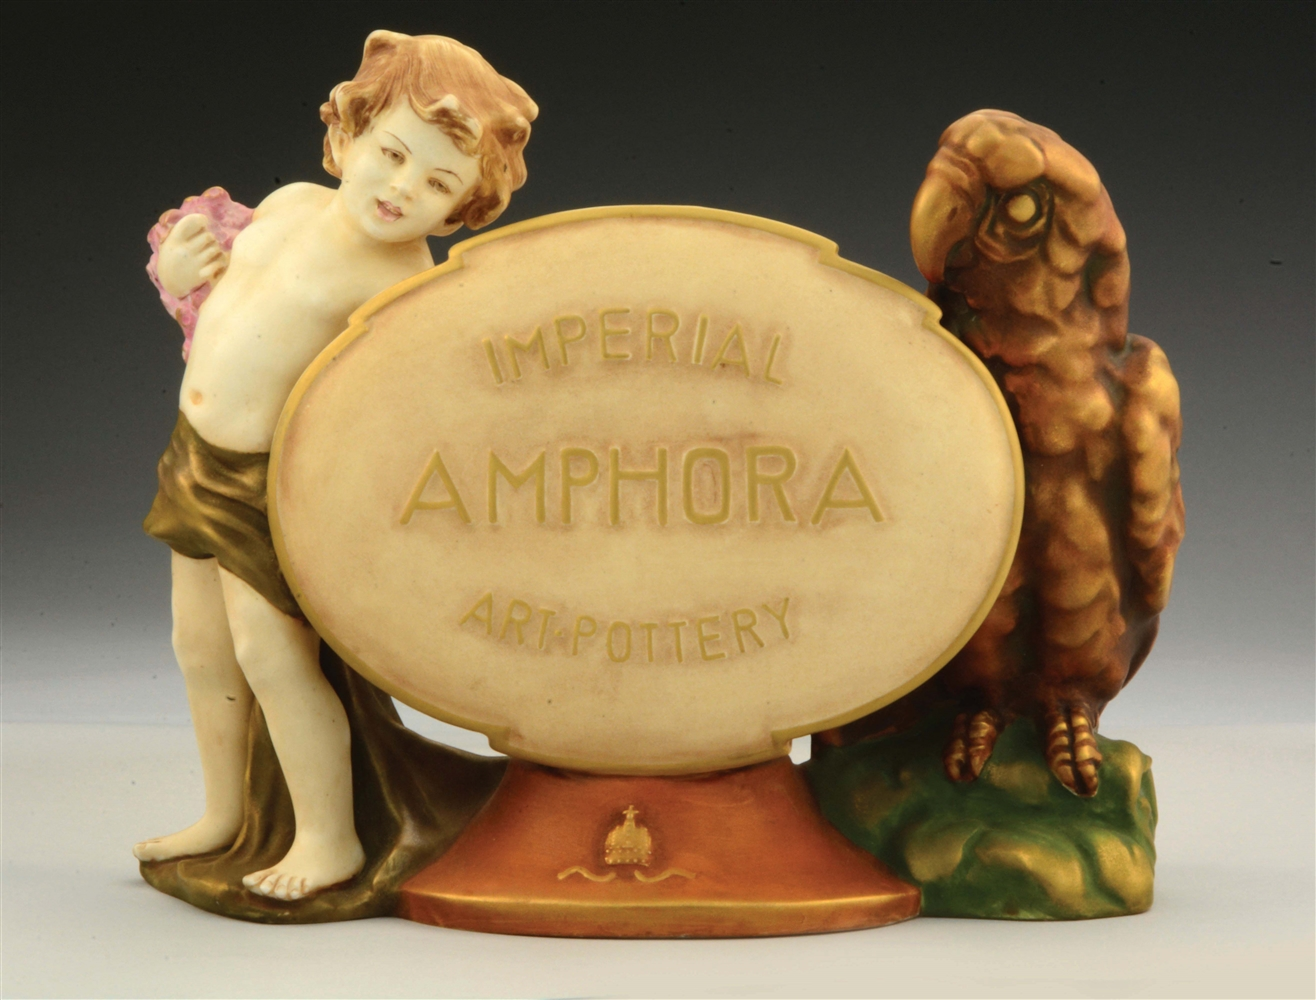 Extremely Rare Ceramic Amphora Art Pottery Showroom Display Sign.